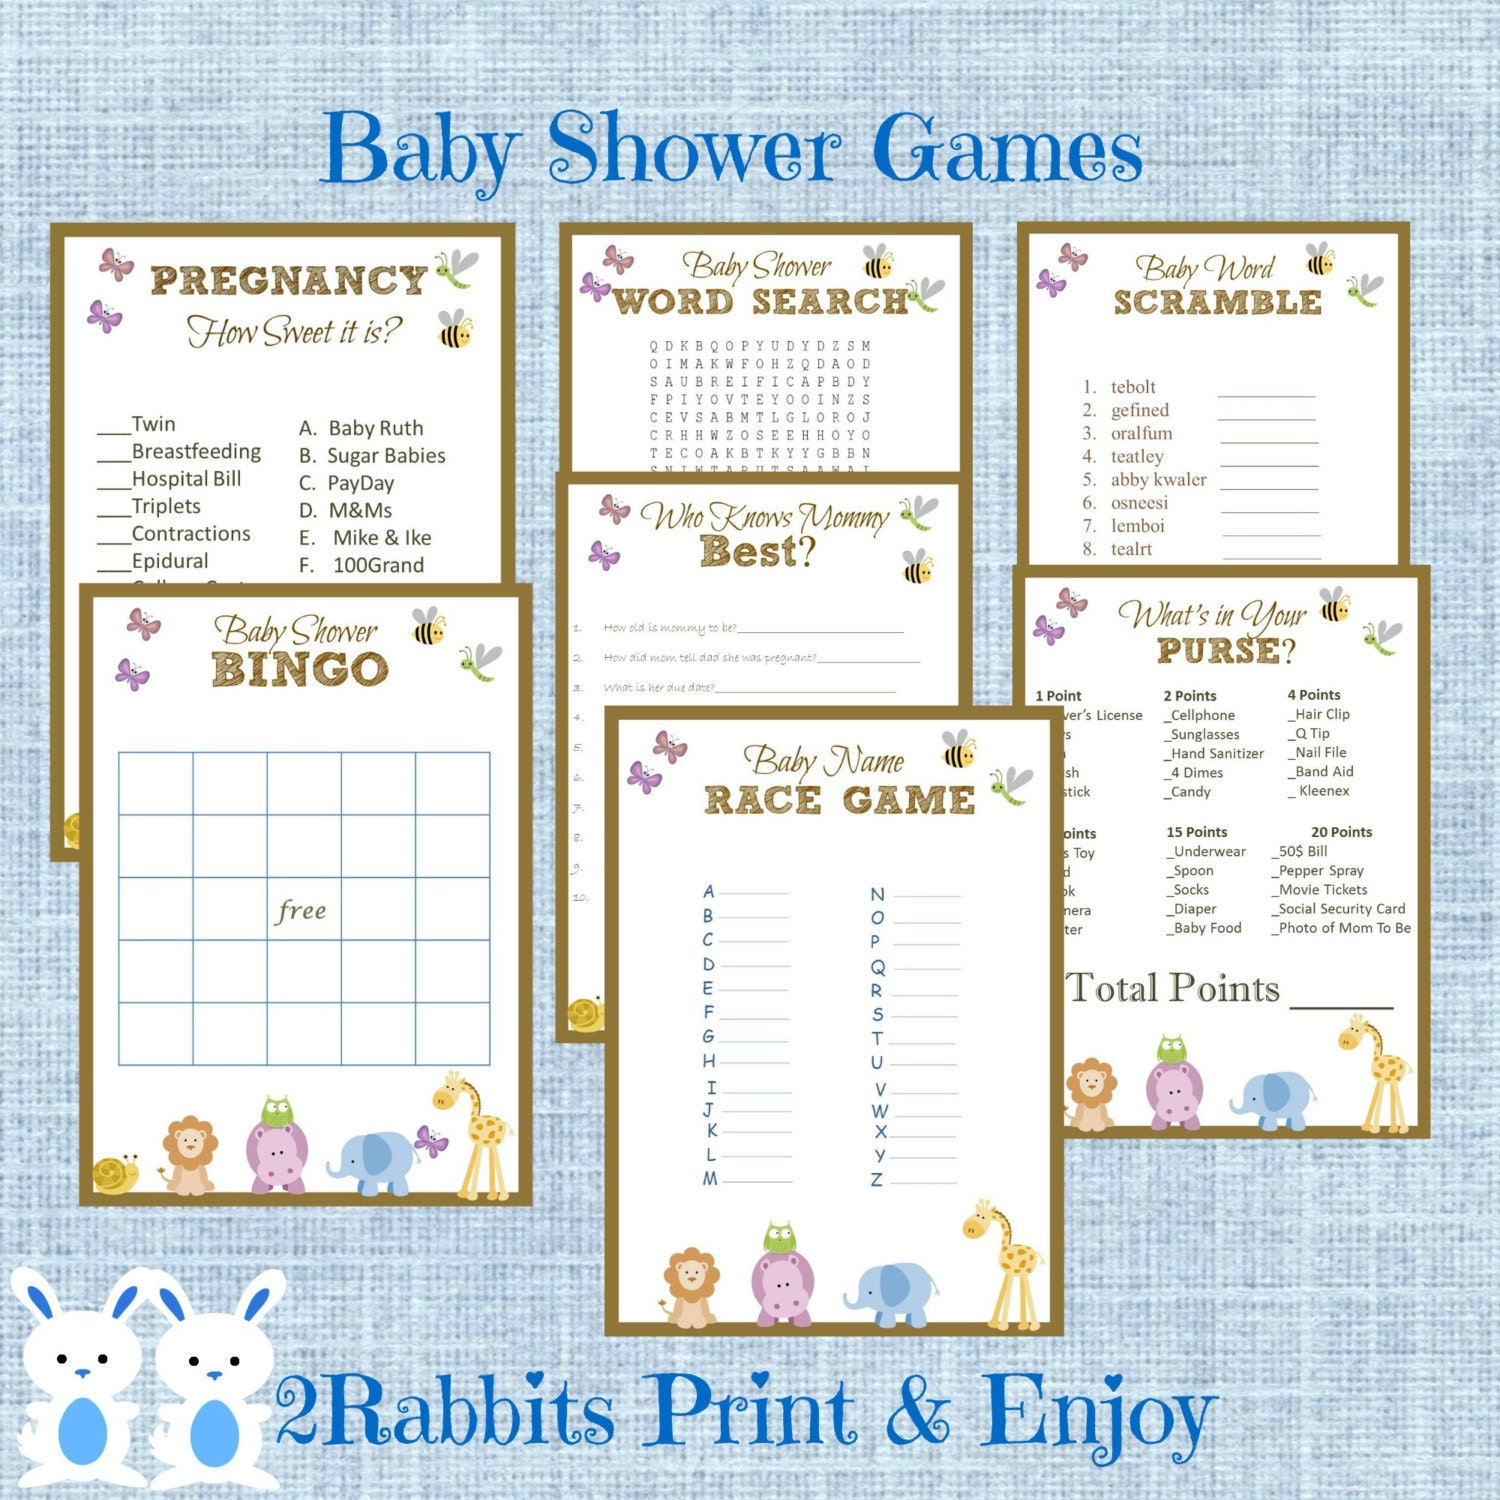 Baby Shower Games: Safari Jungle Baby Shower Games Package 7 Printable Games Name